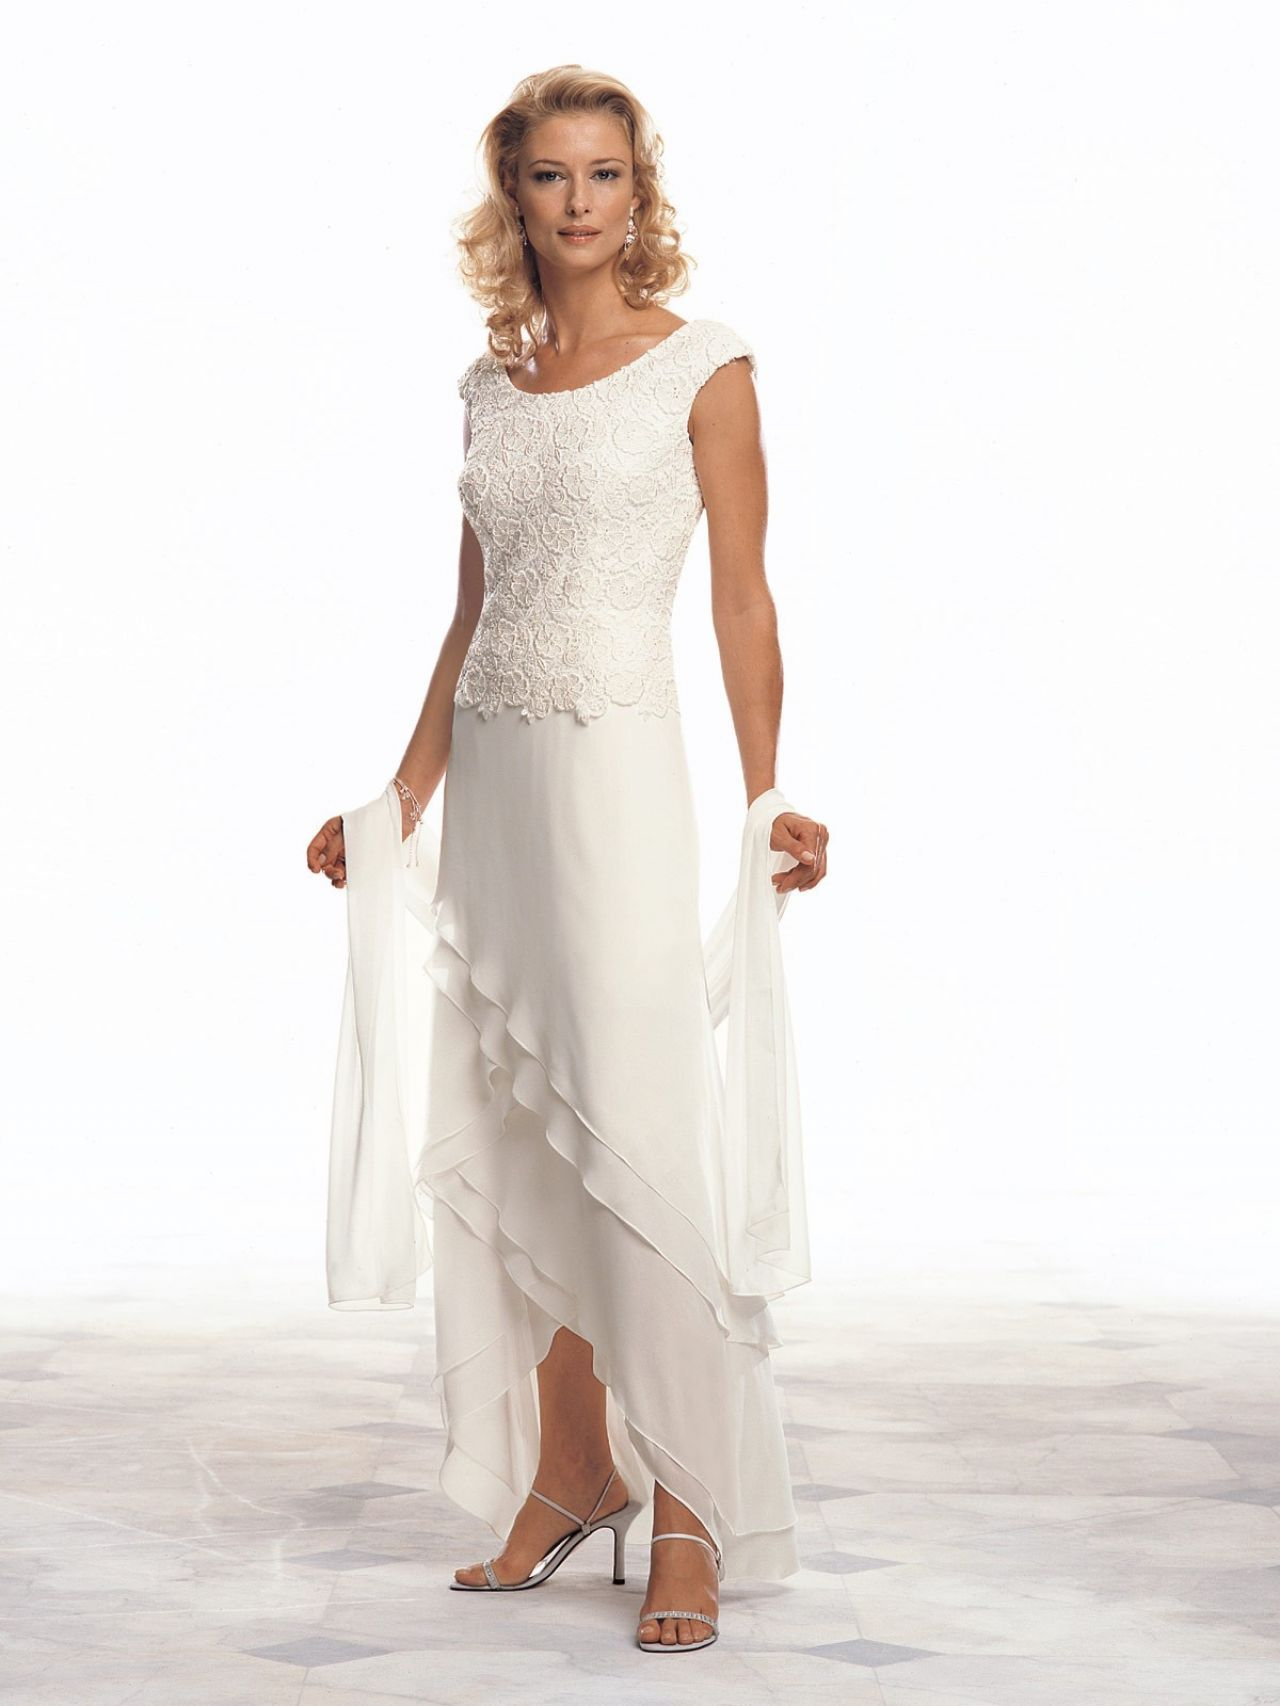 Tropical Wedding Dresses For Mother Of The Bride